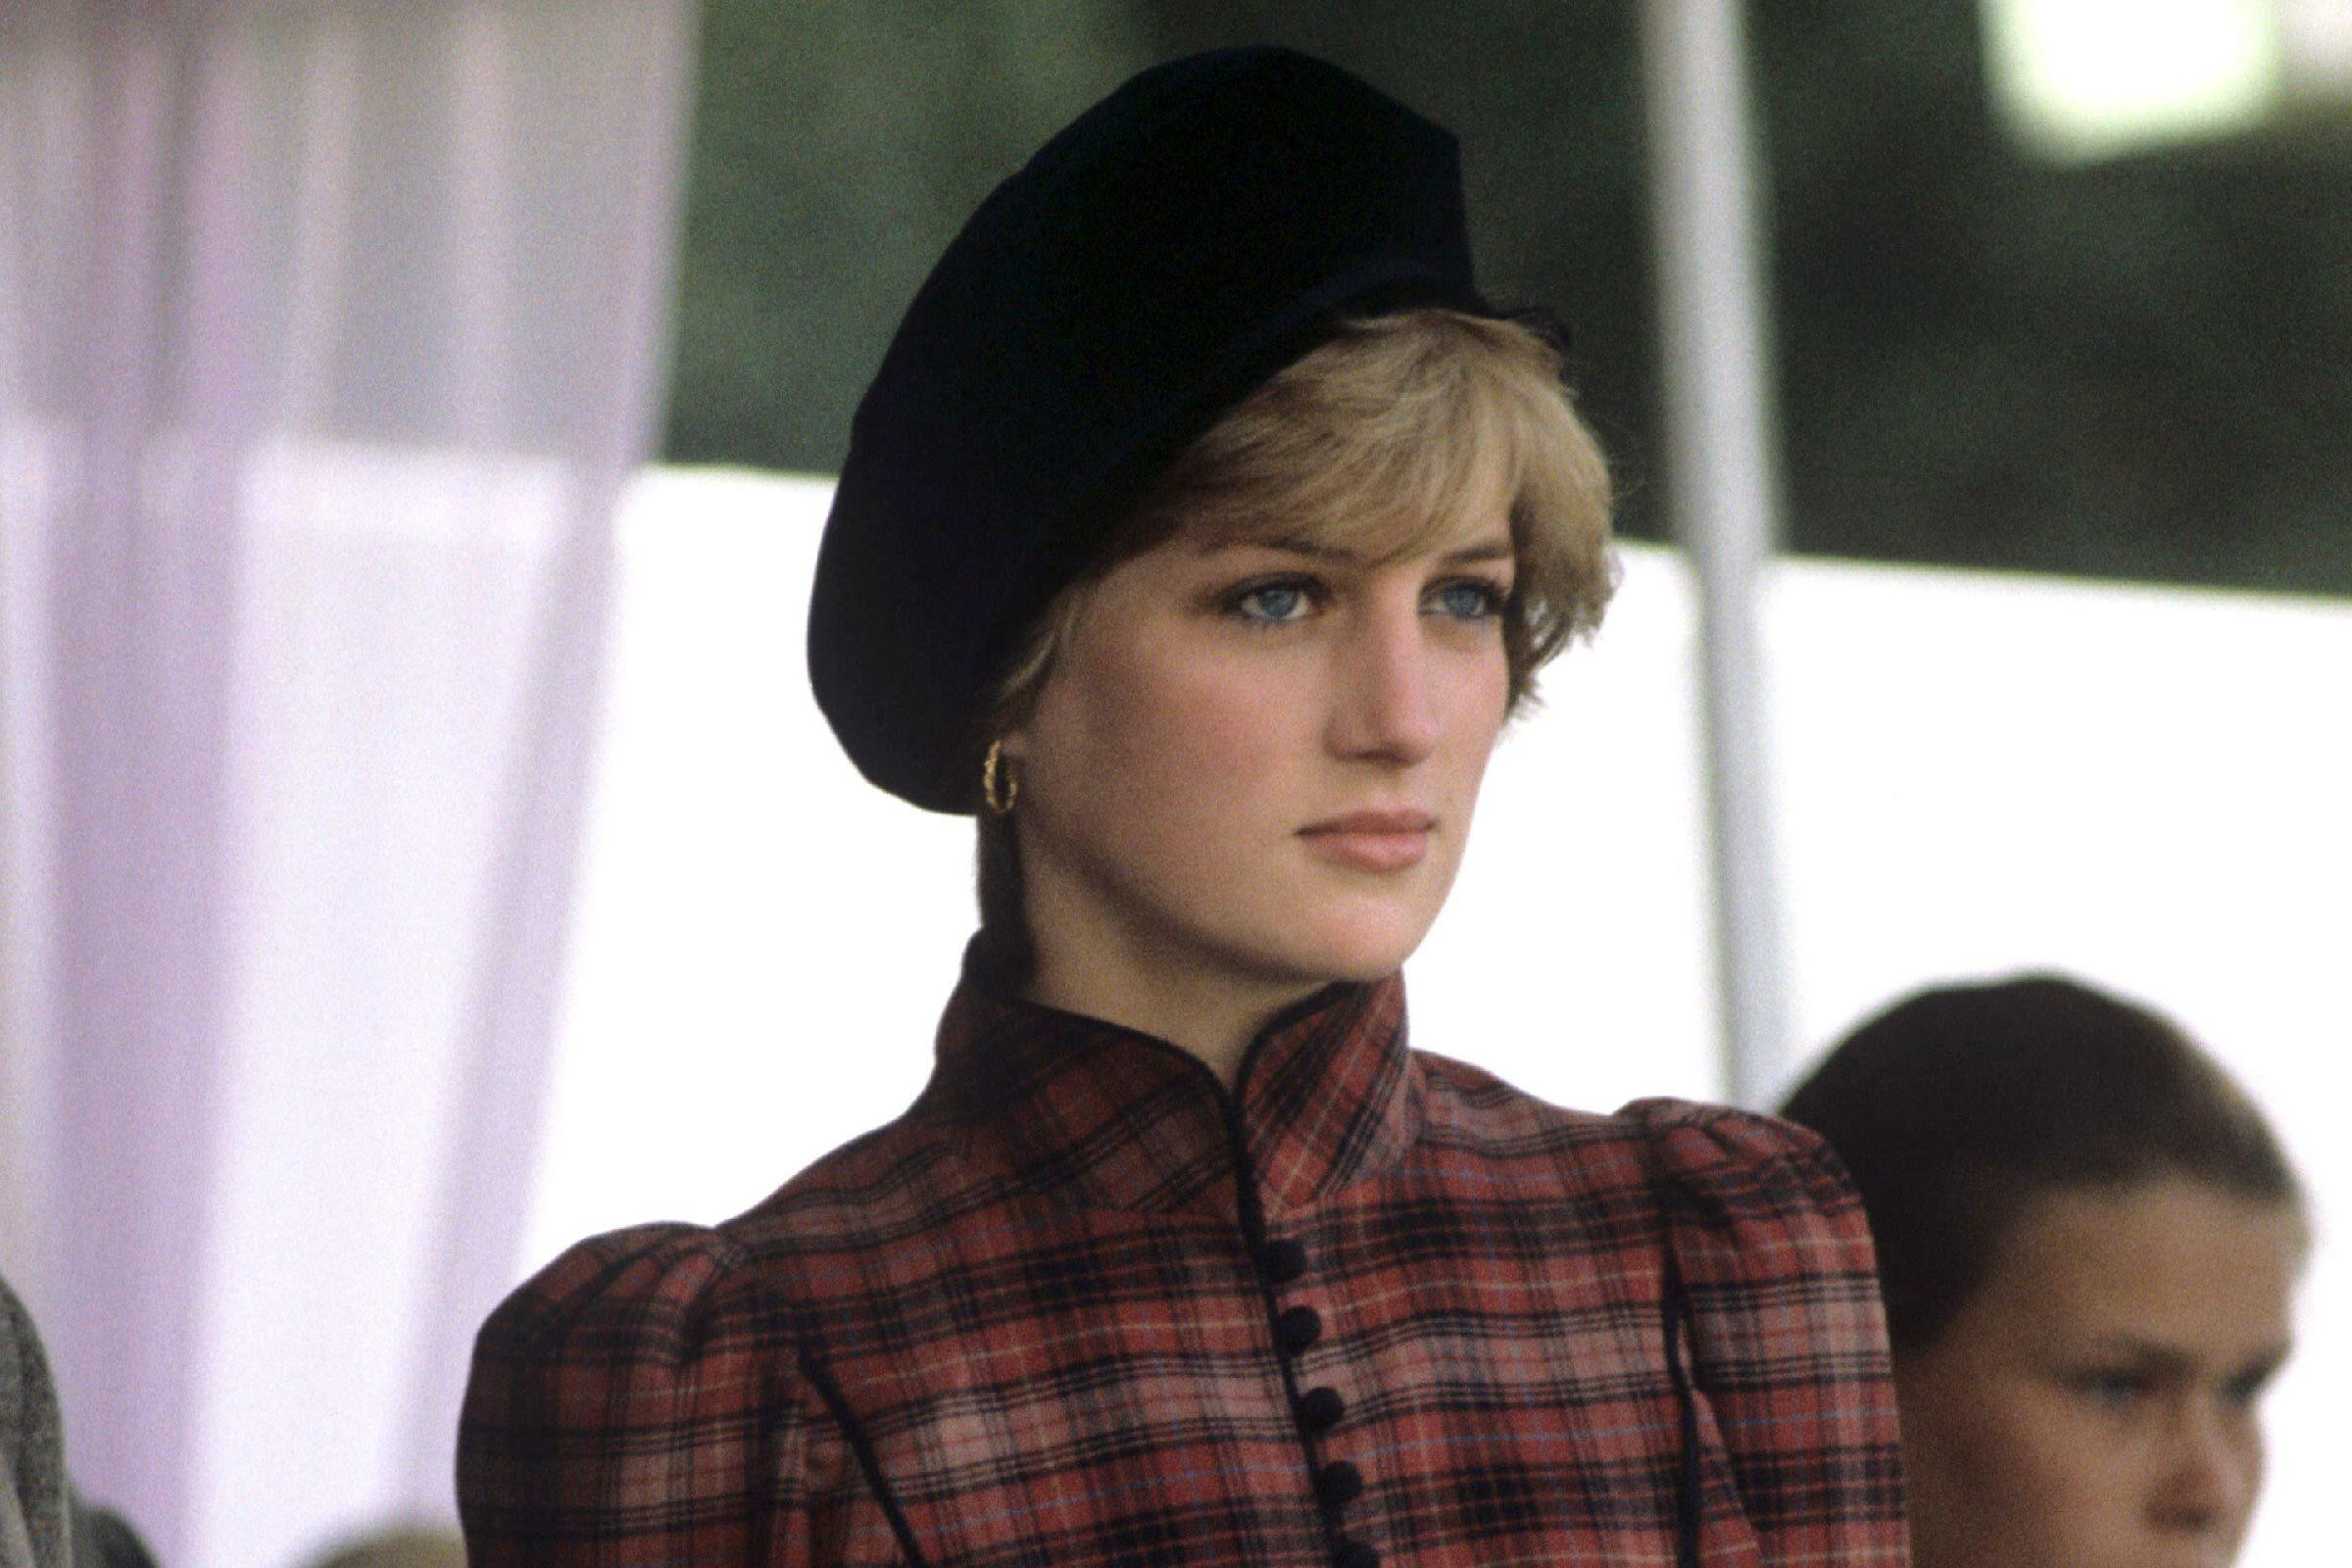 Princess Diana pictured in a stylish beret.